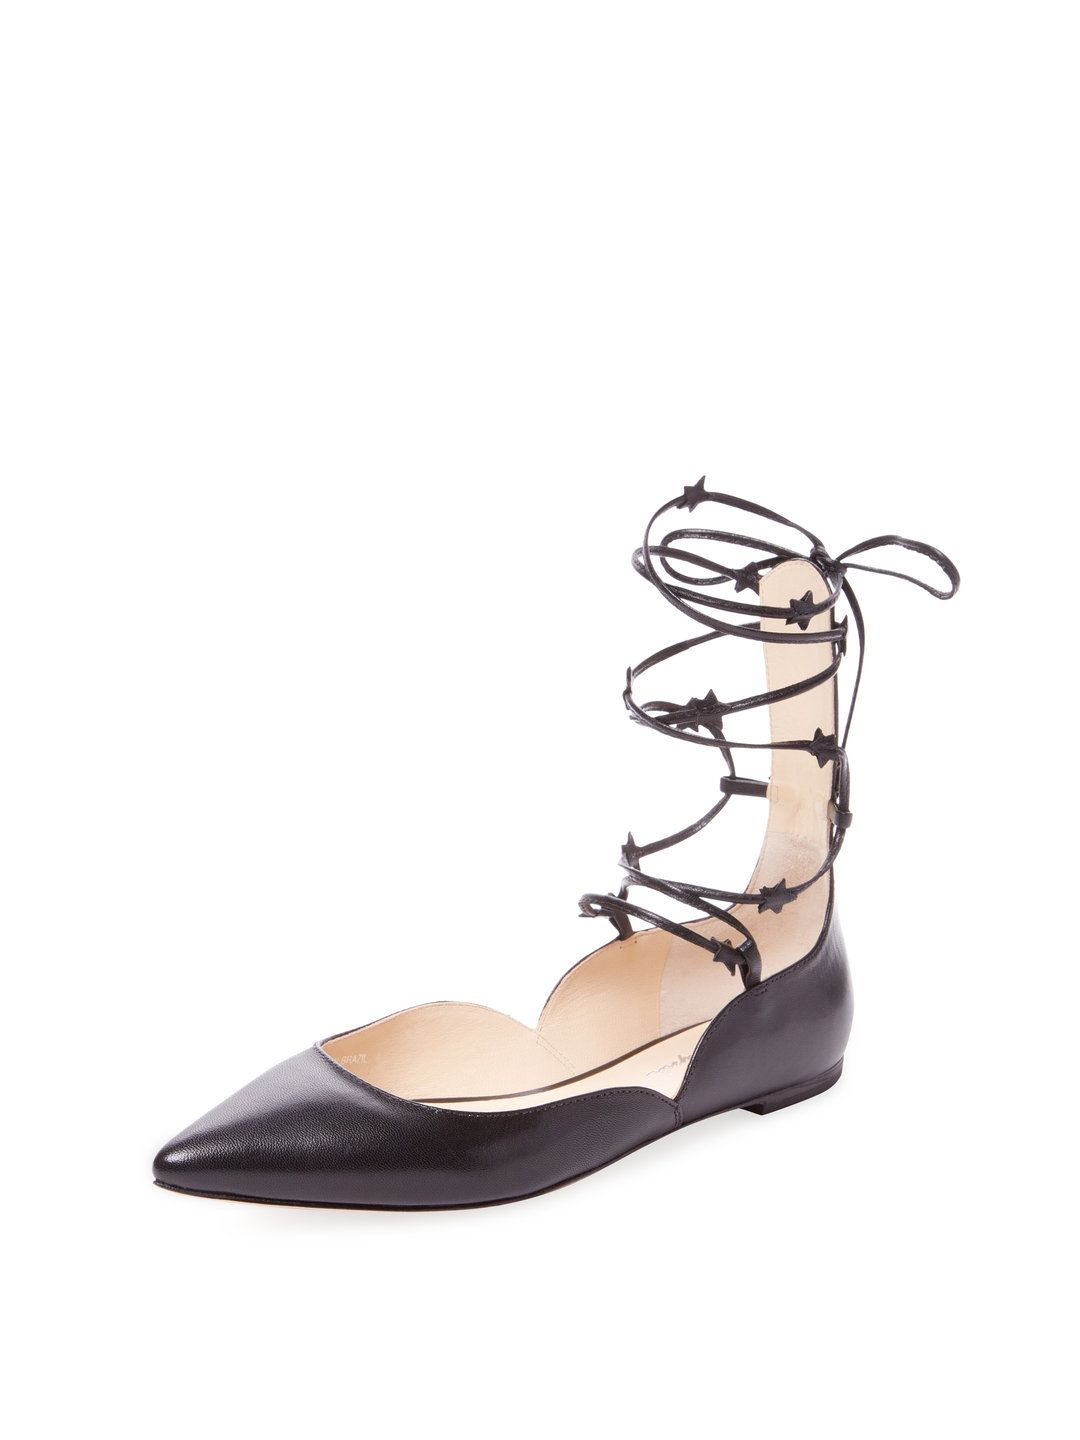 Comet Lace-Up Leather Ballet Flat by Isa Tapia at Gilt